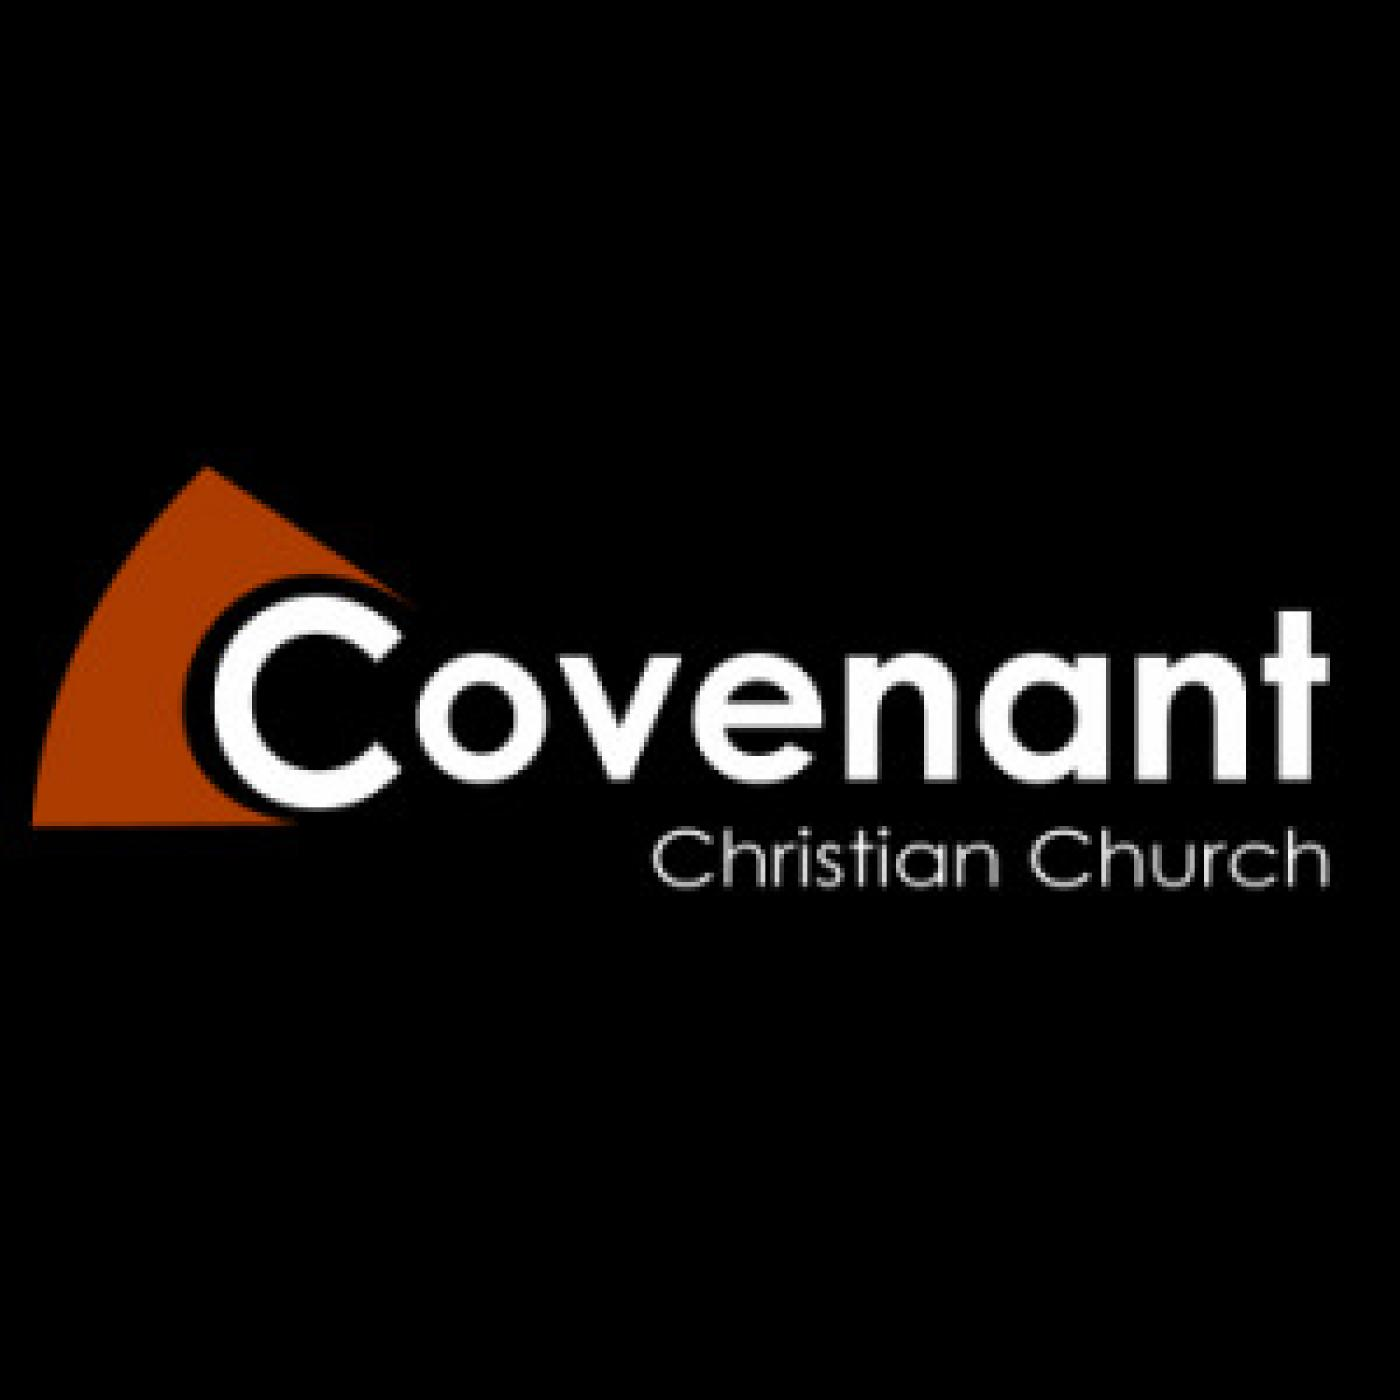 Covenant Christian Church The Dalles, Oregon